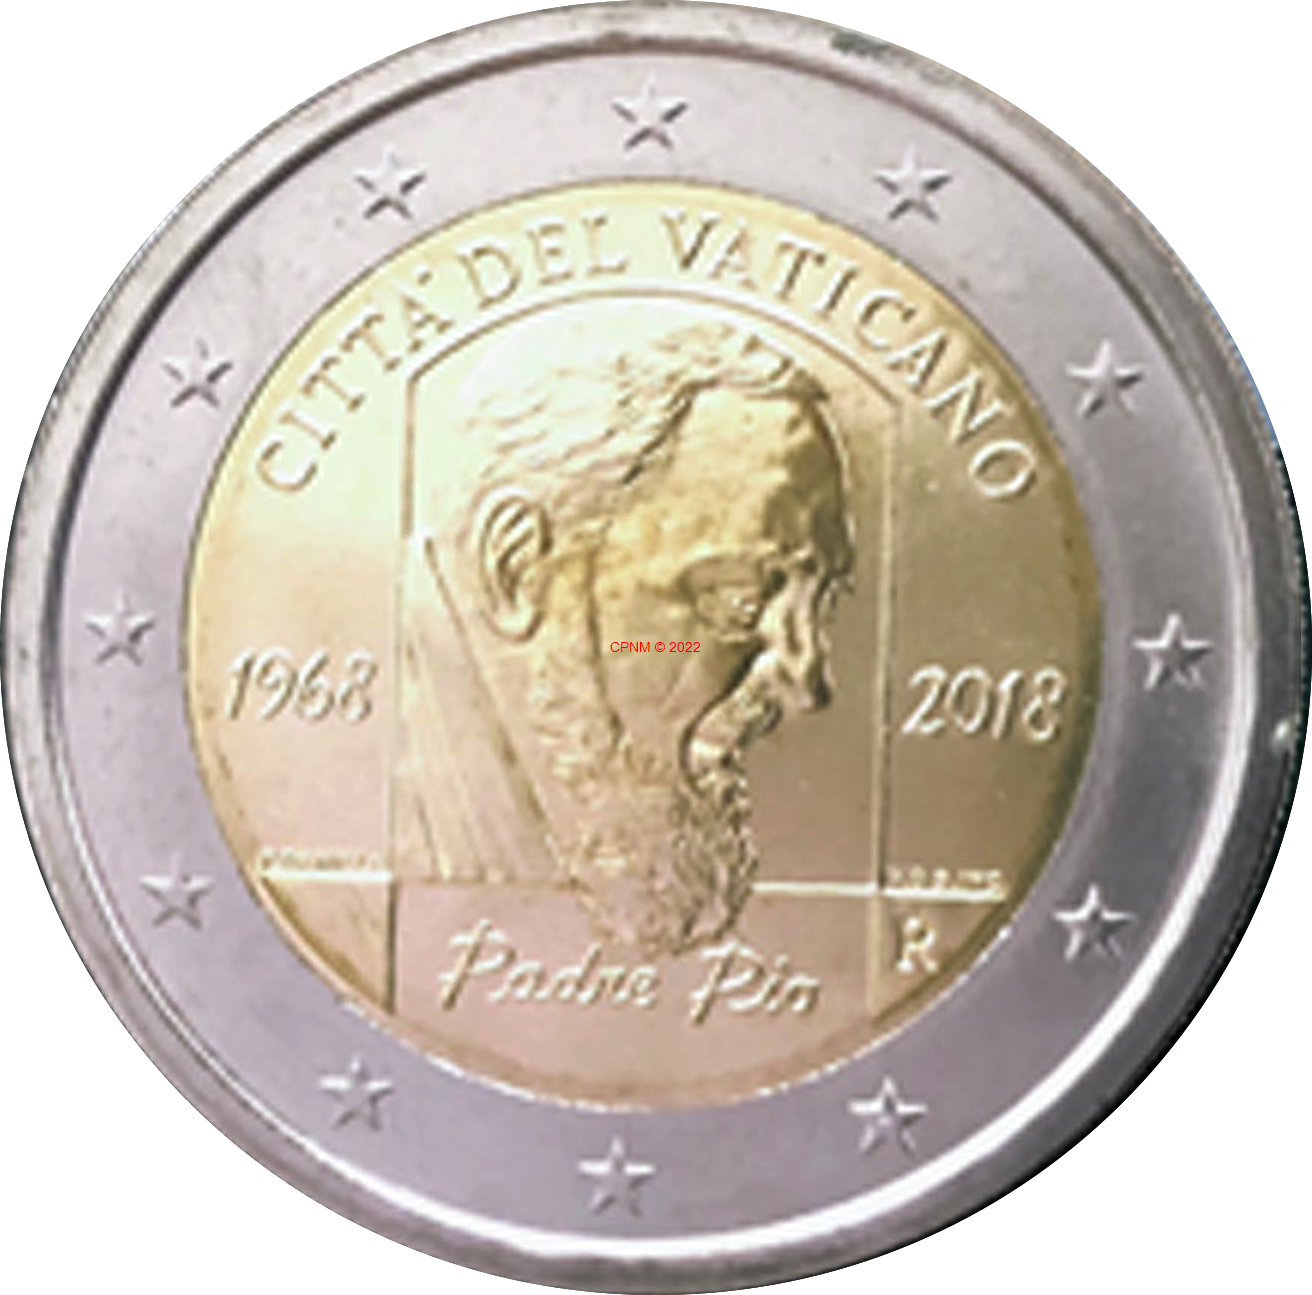 Euros 2 euros comm moratives va 2 c 18 2 be - Comptoir numismatique monaco ...